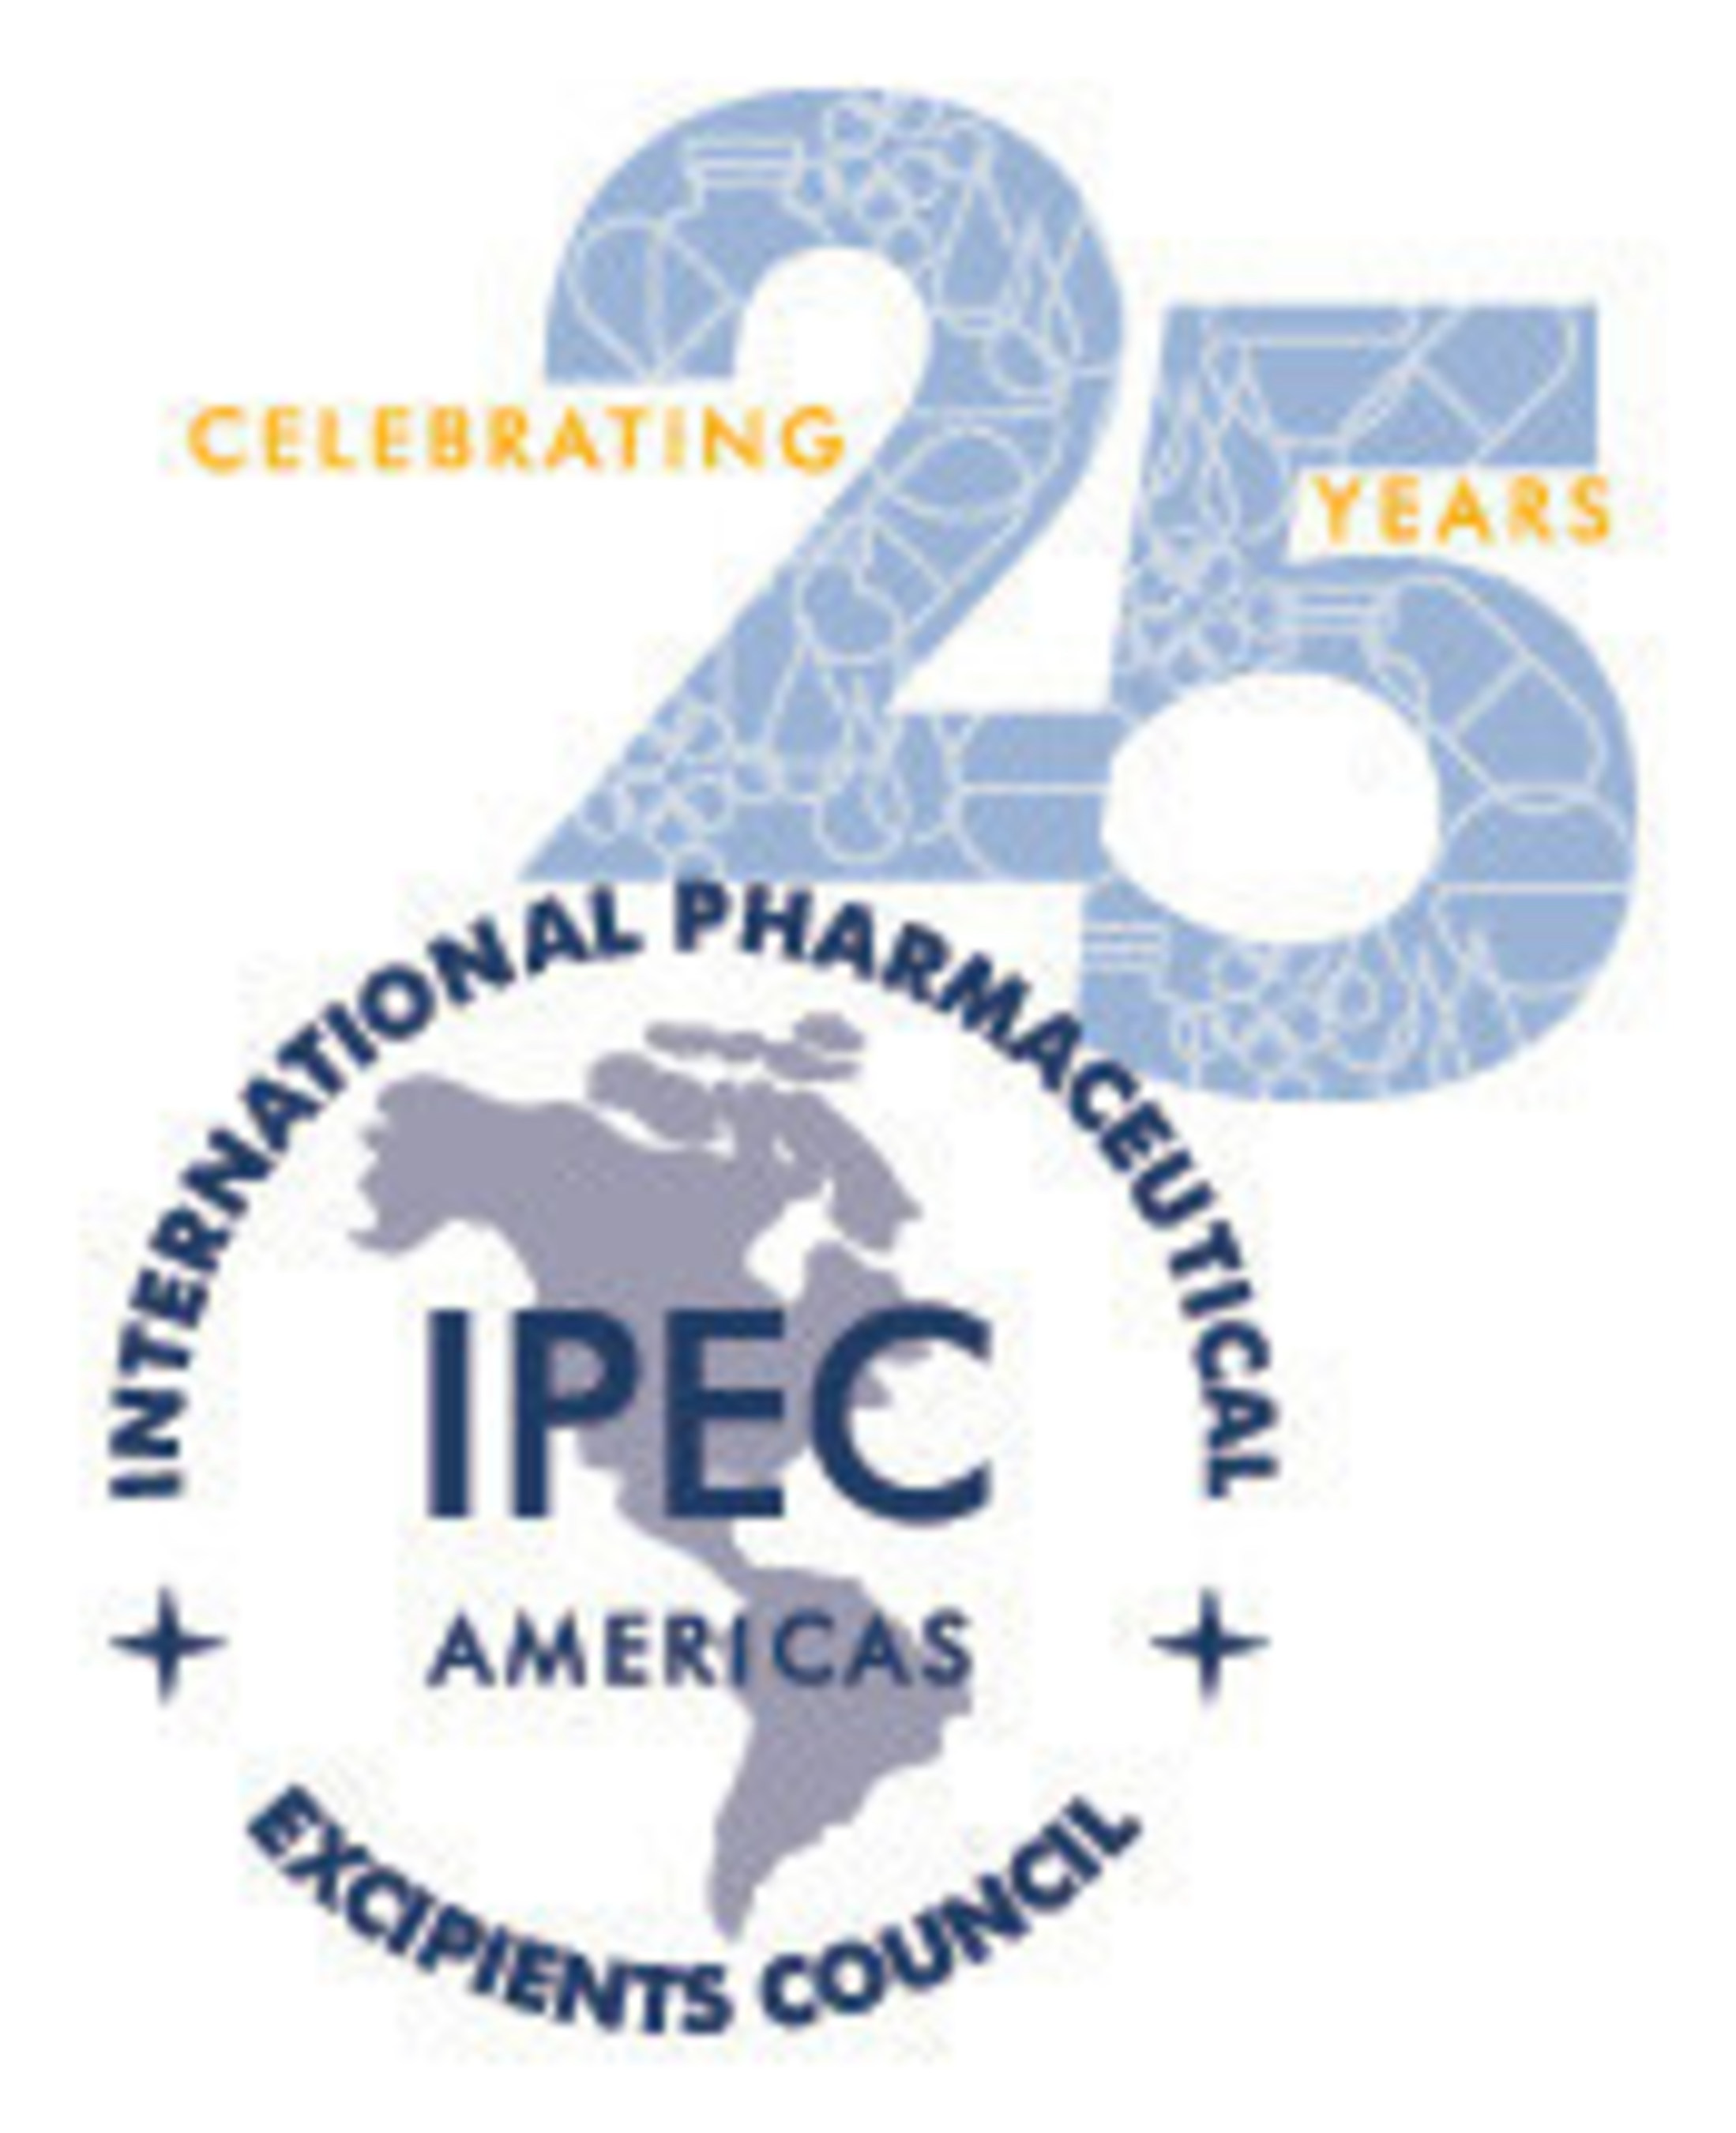 Pharmaceutical Conference ExcipientFest Celebrates IPEC's 25th Anniversary